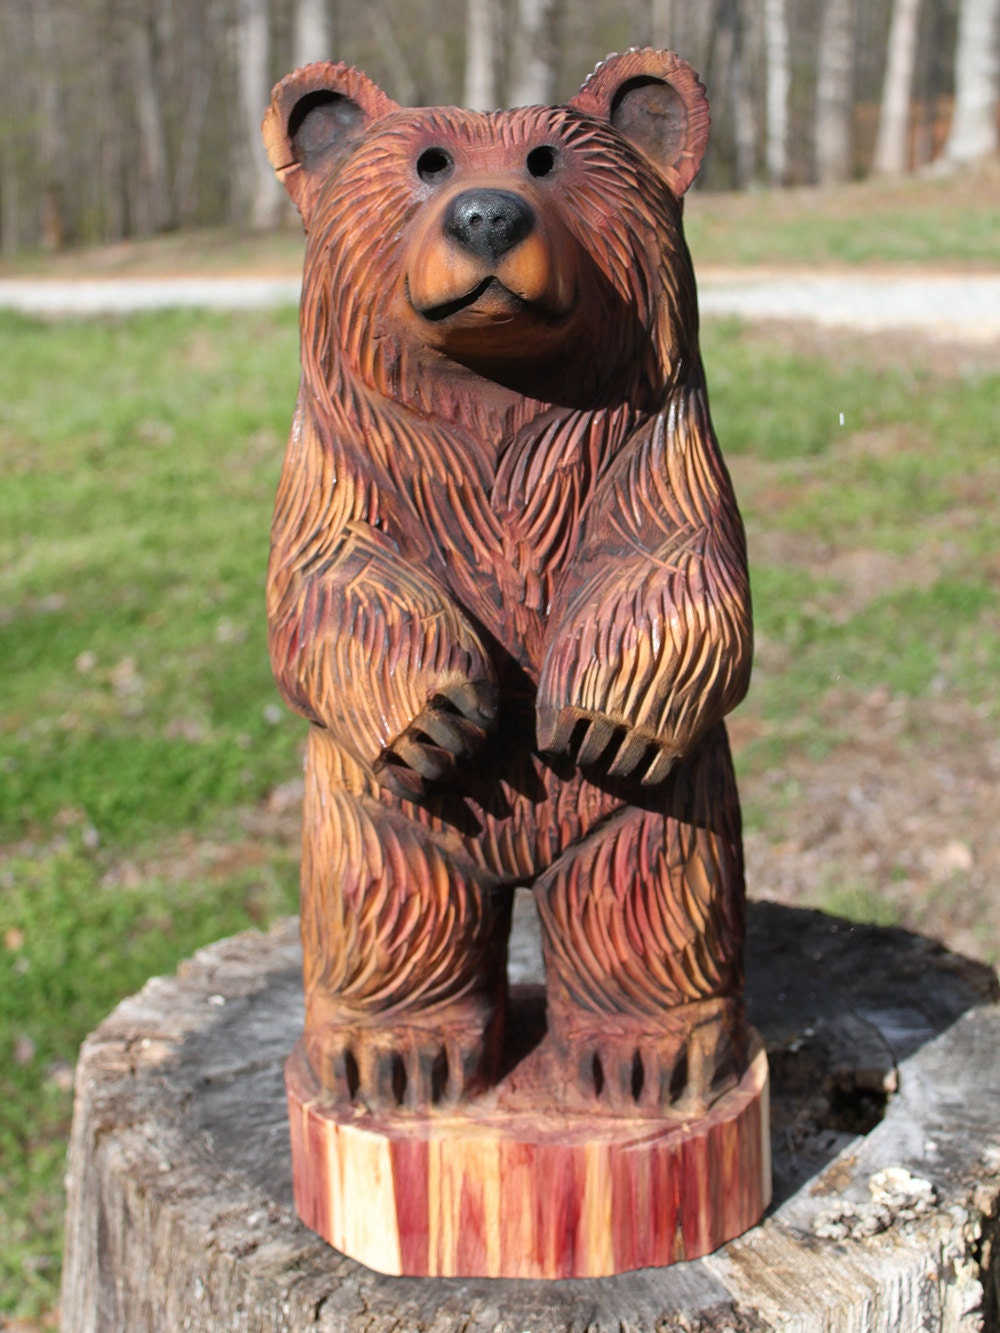 Inch bear cub chainsaw wood carving dually